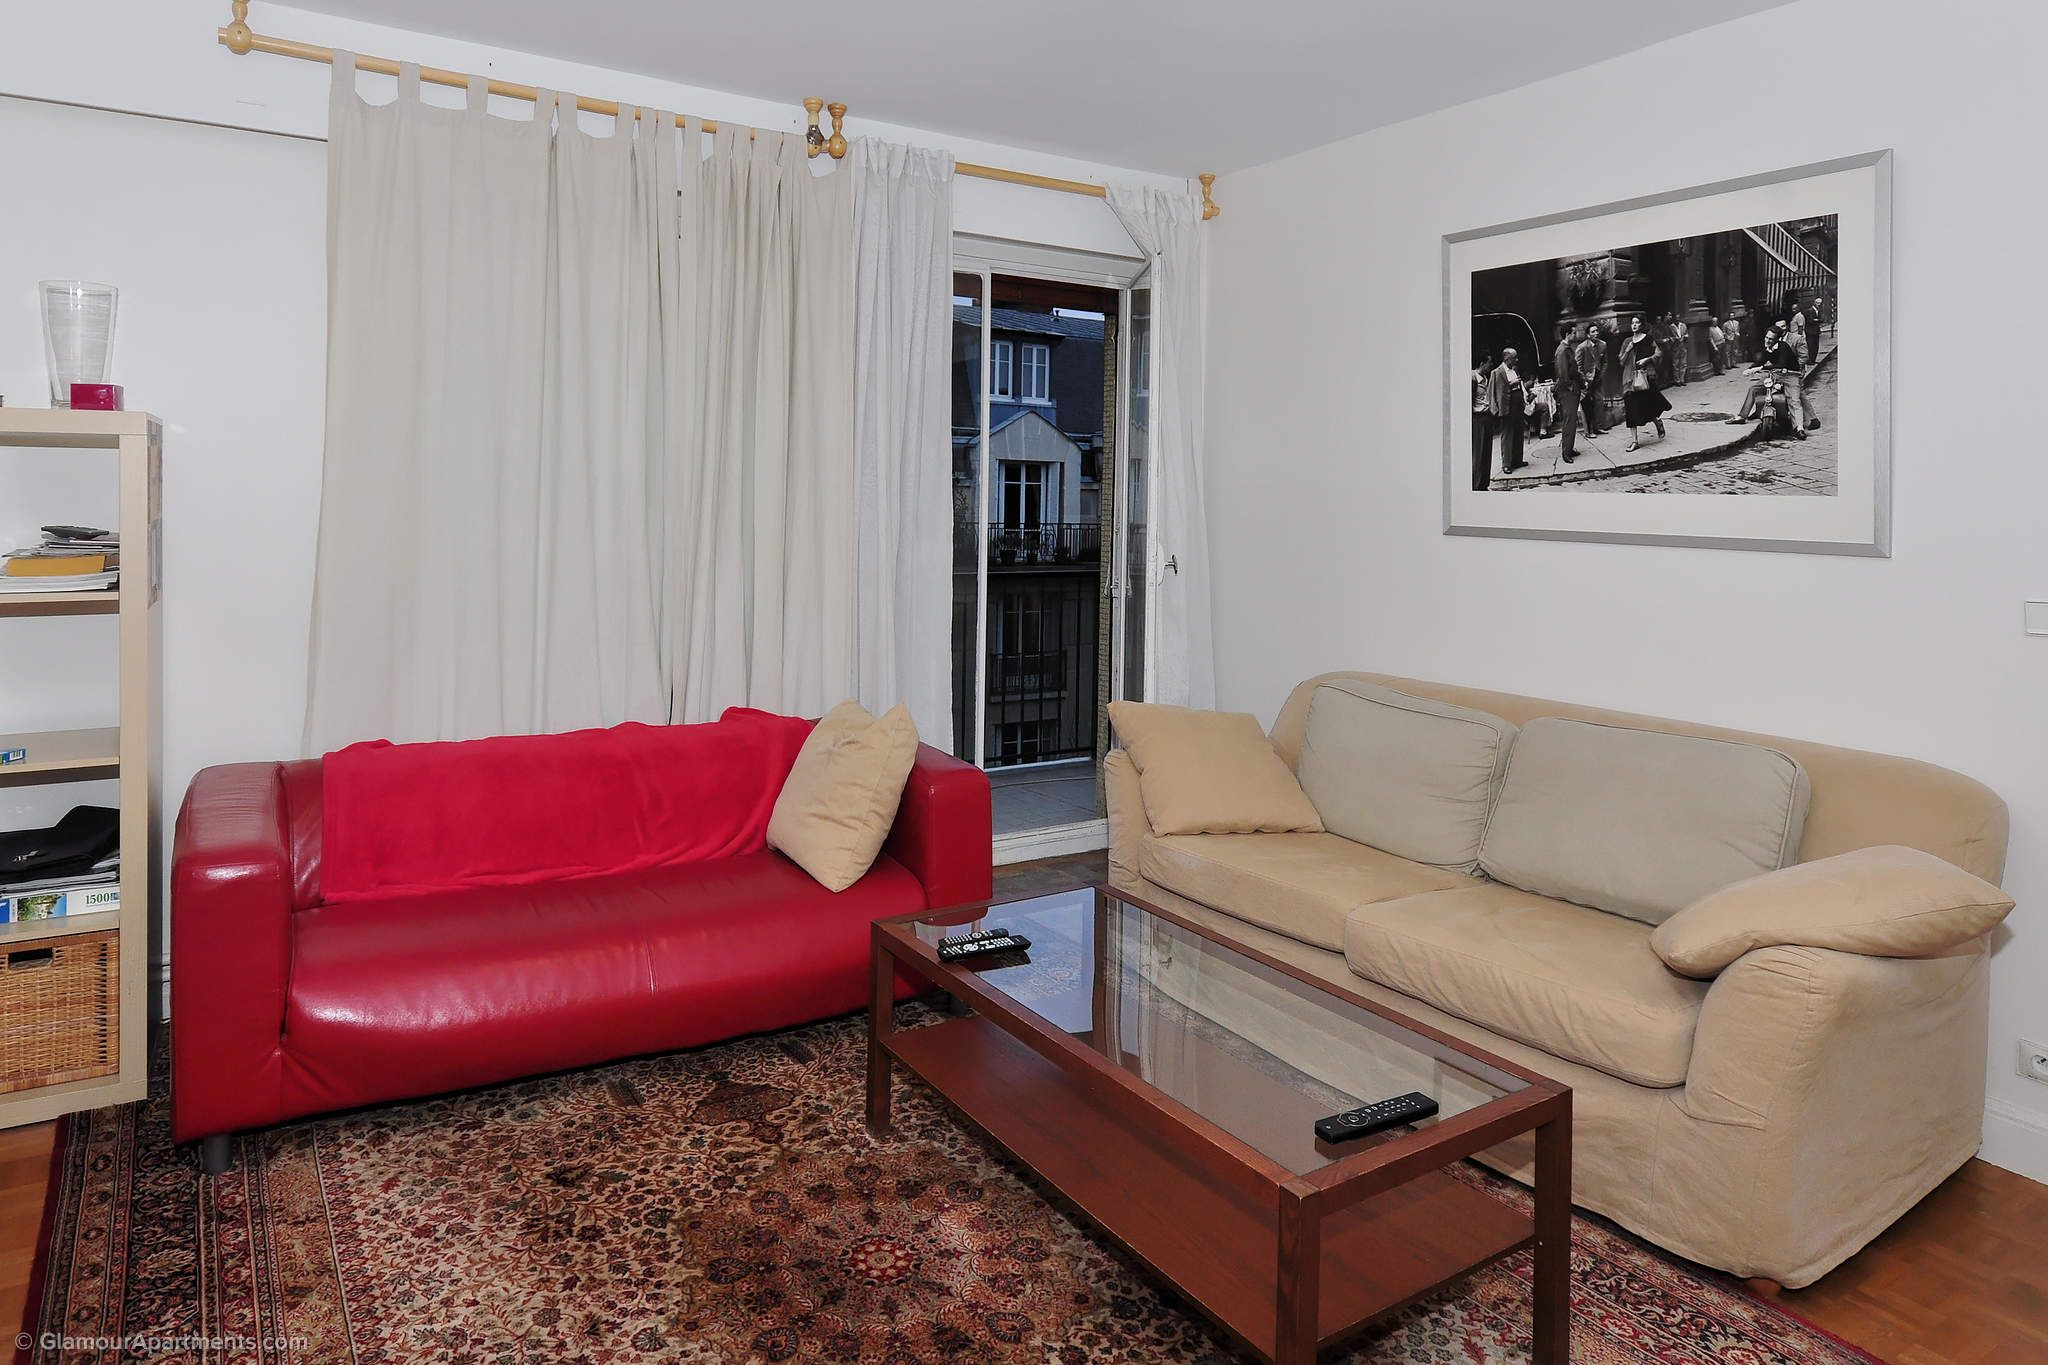 1 Bedroom Furnished Apartment For Rent On Rue Mirabeau In The 16th  Arrondissement Of Paris